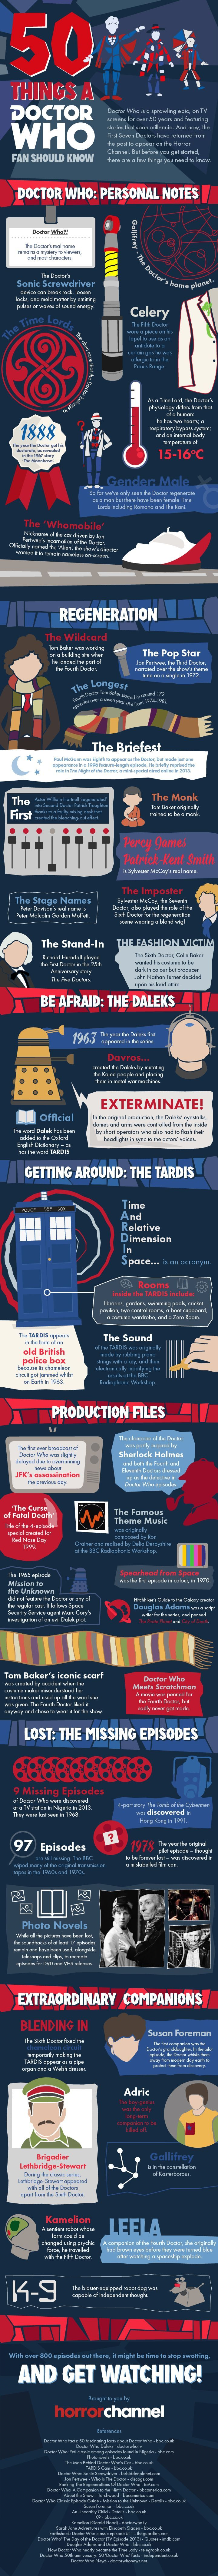 50 DoctorWho facts every Whovian should know!